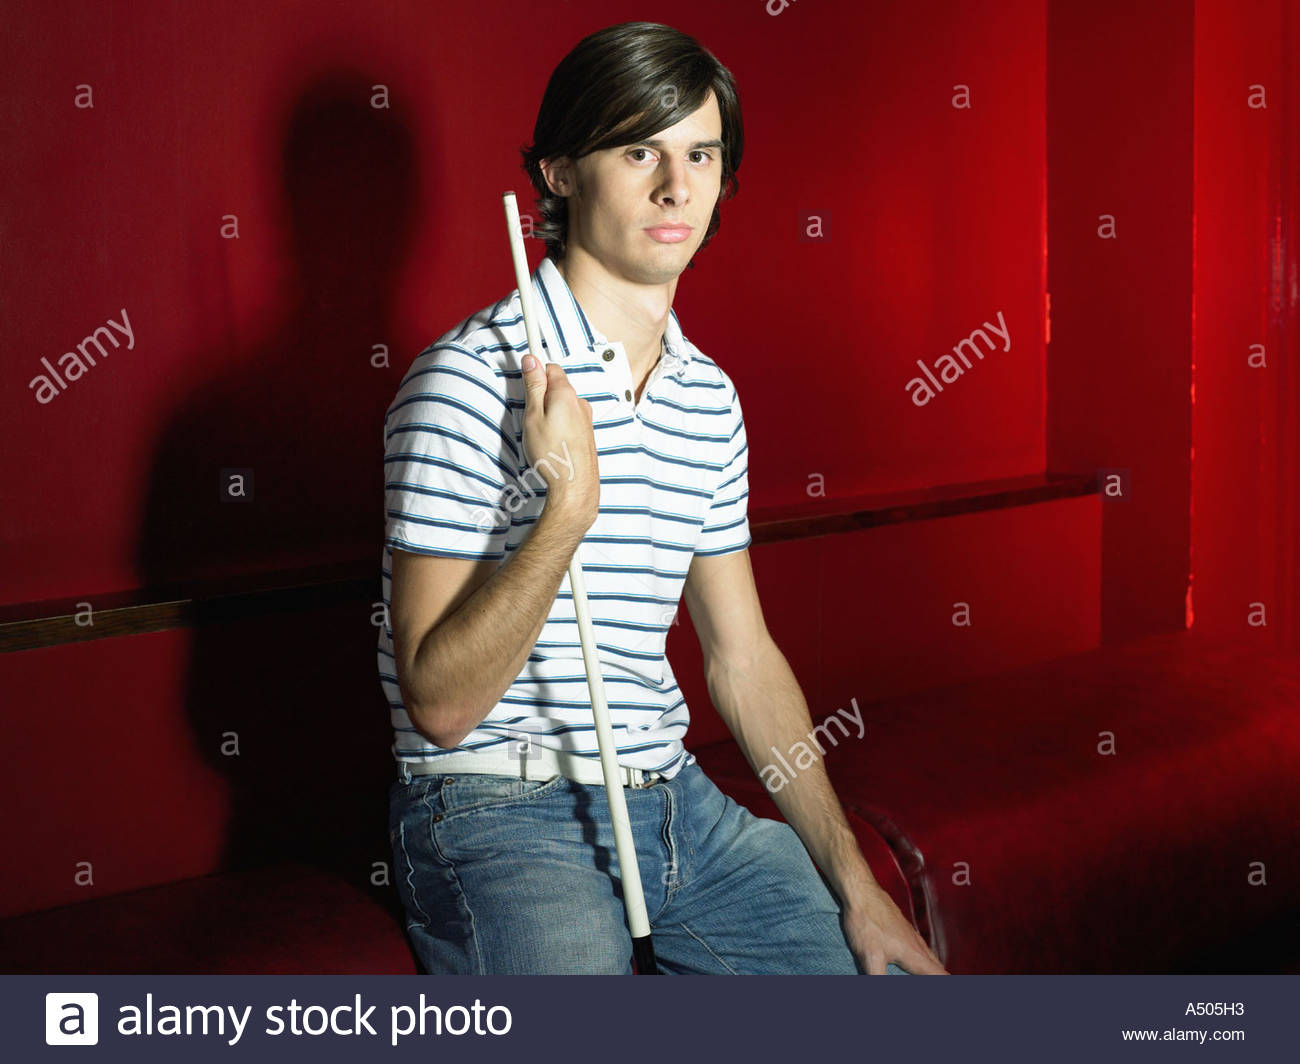 One man sitting in a bar holding pool cue - Stock Image